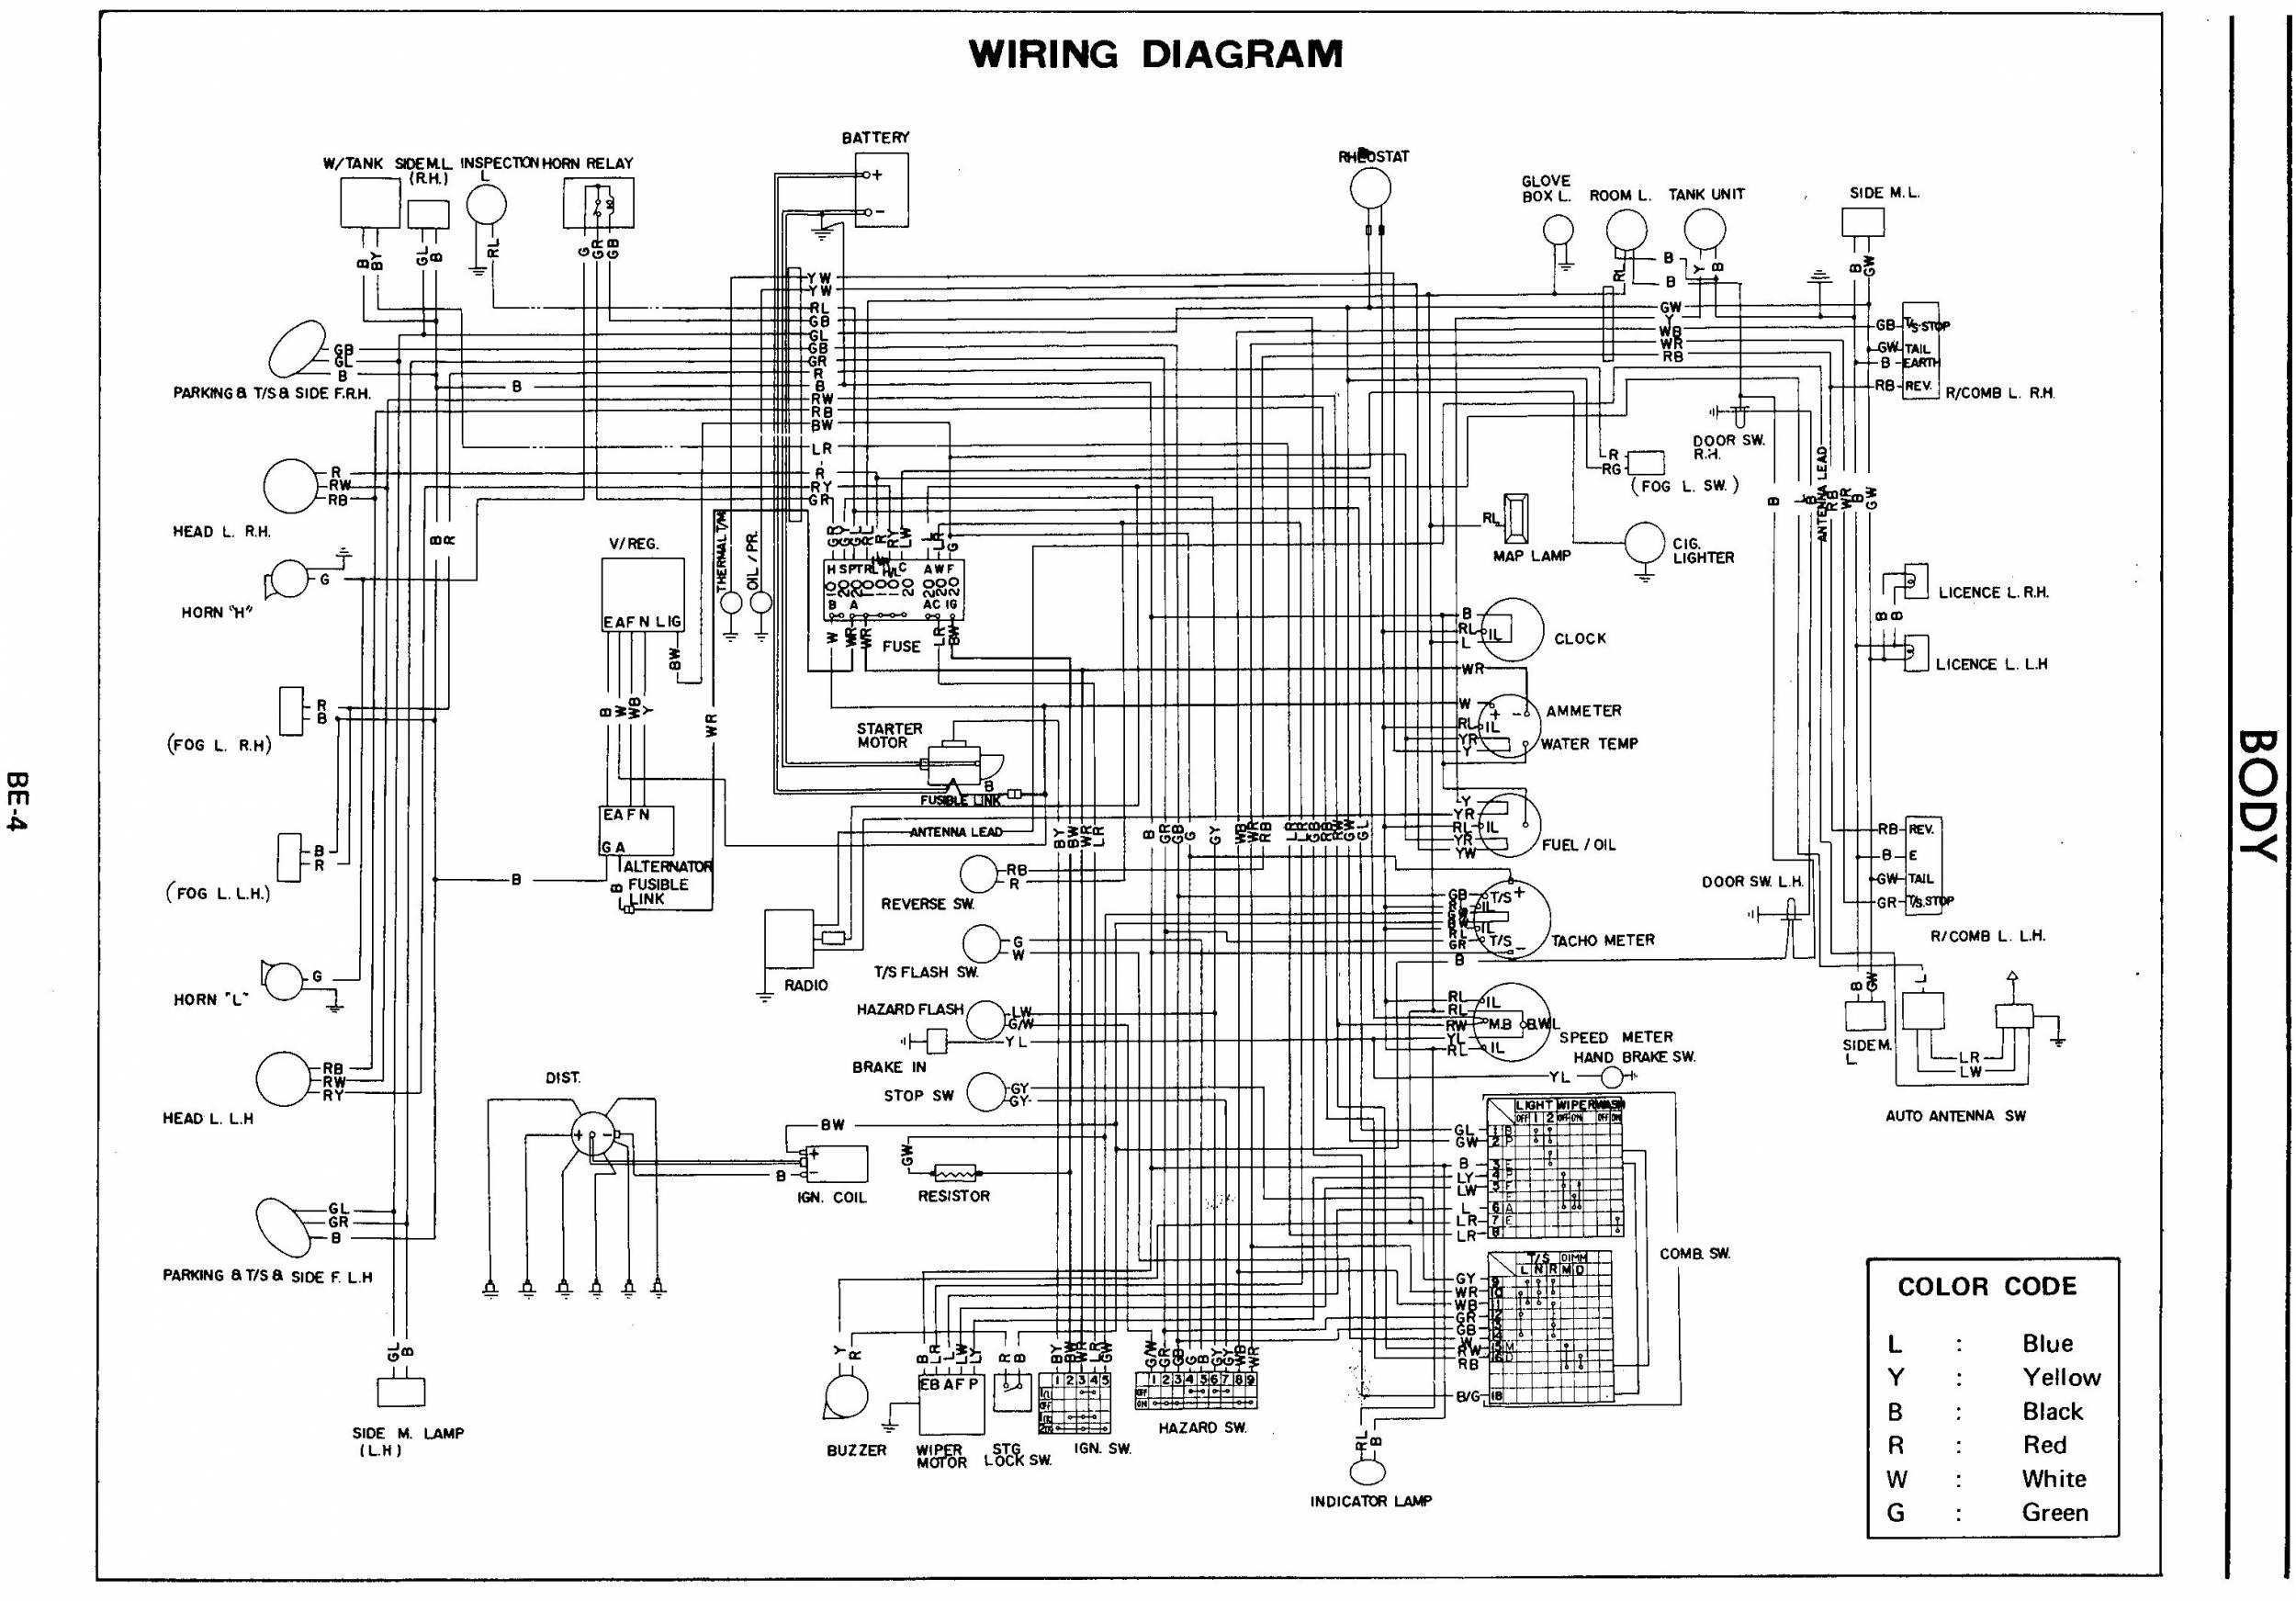 Paragon 00 Wiring Diagram Download